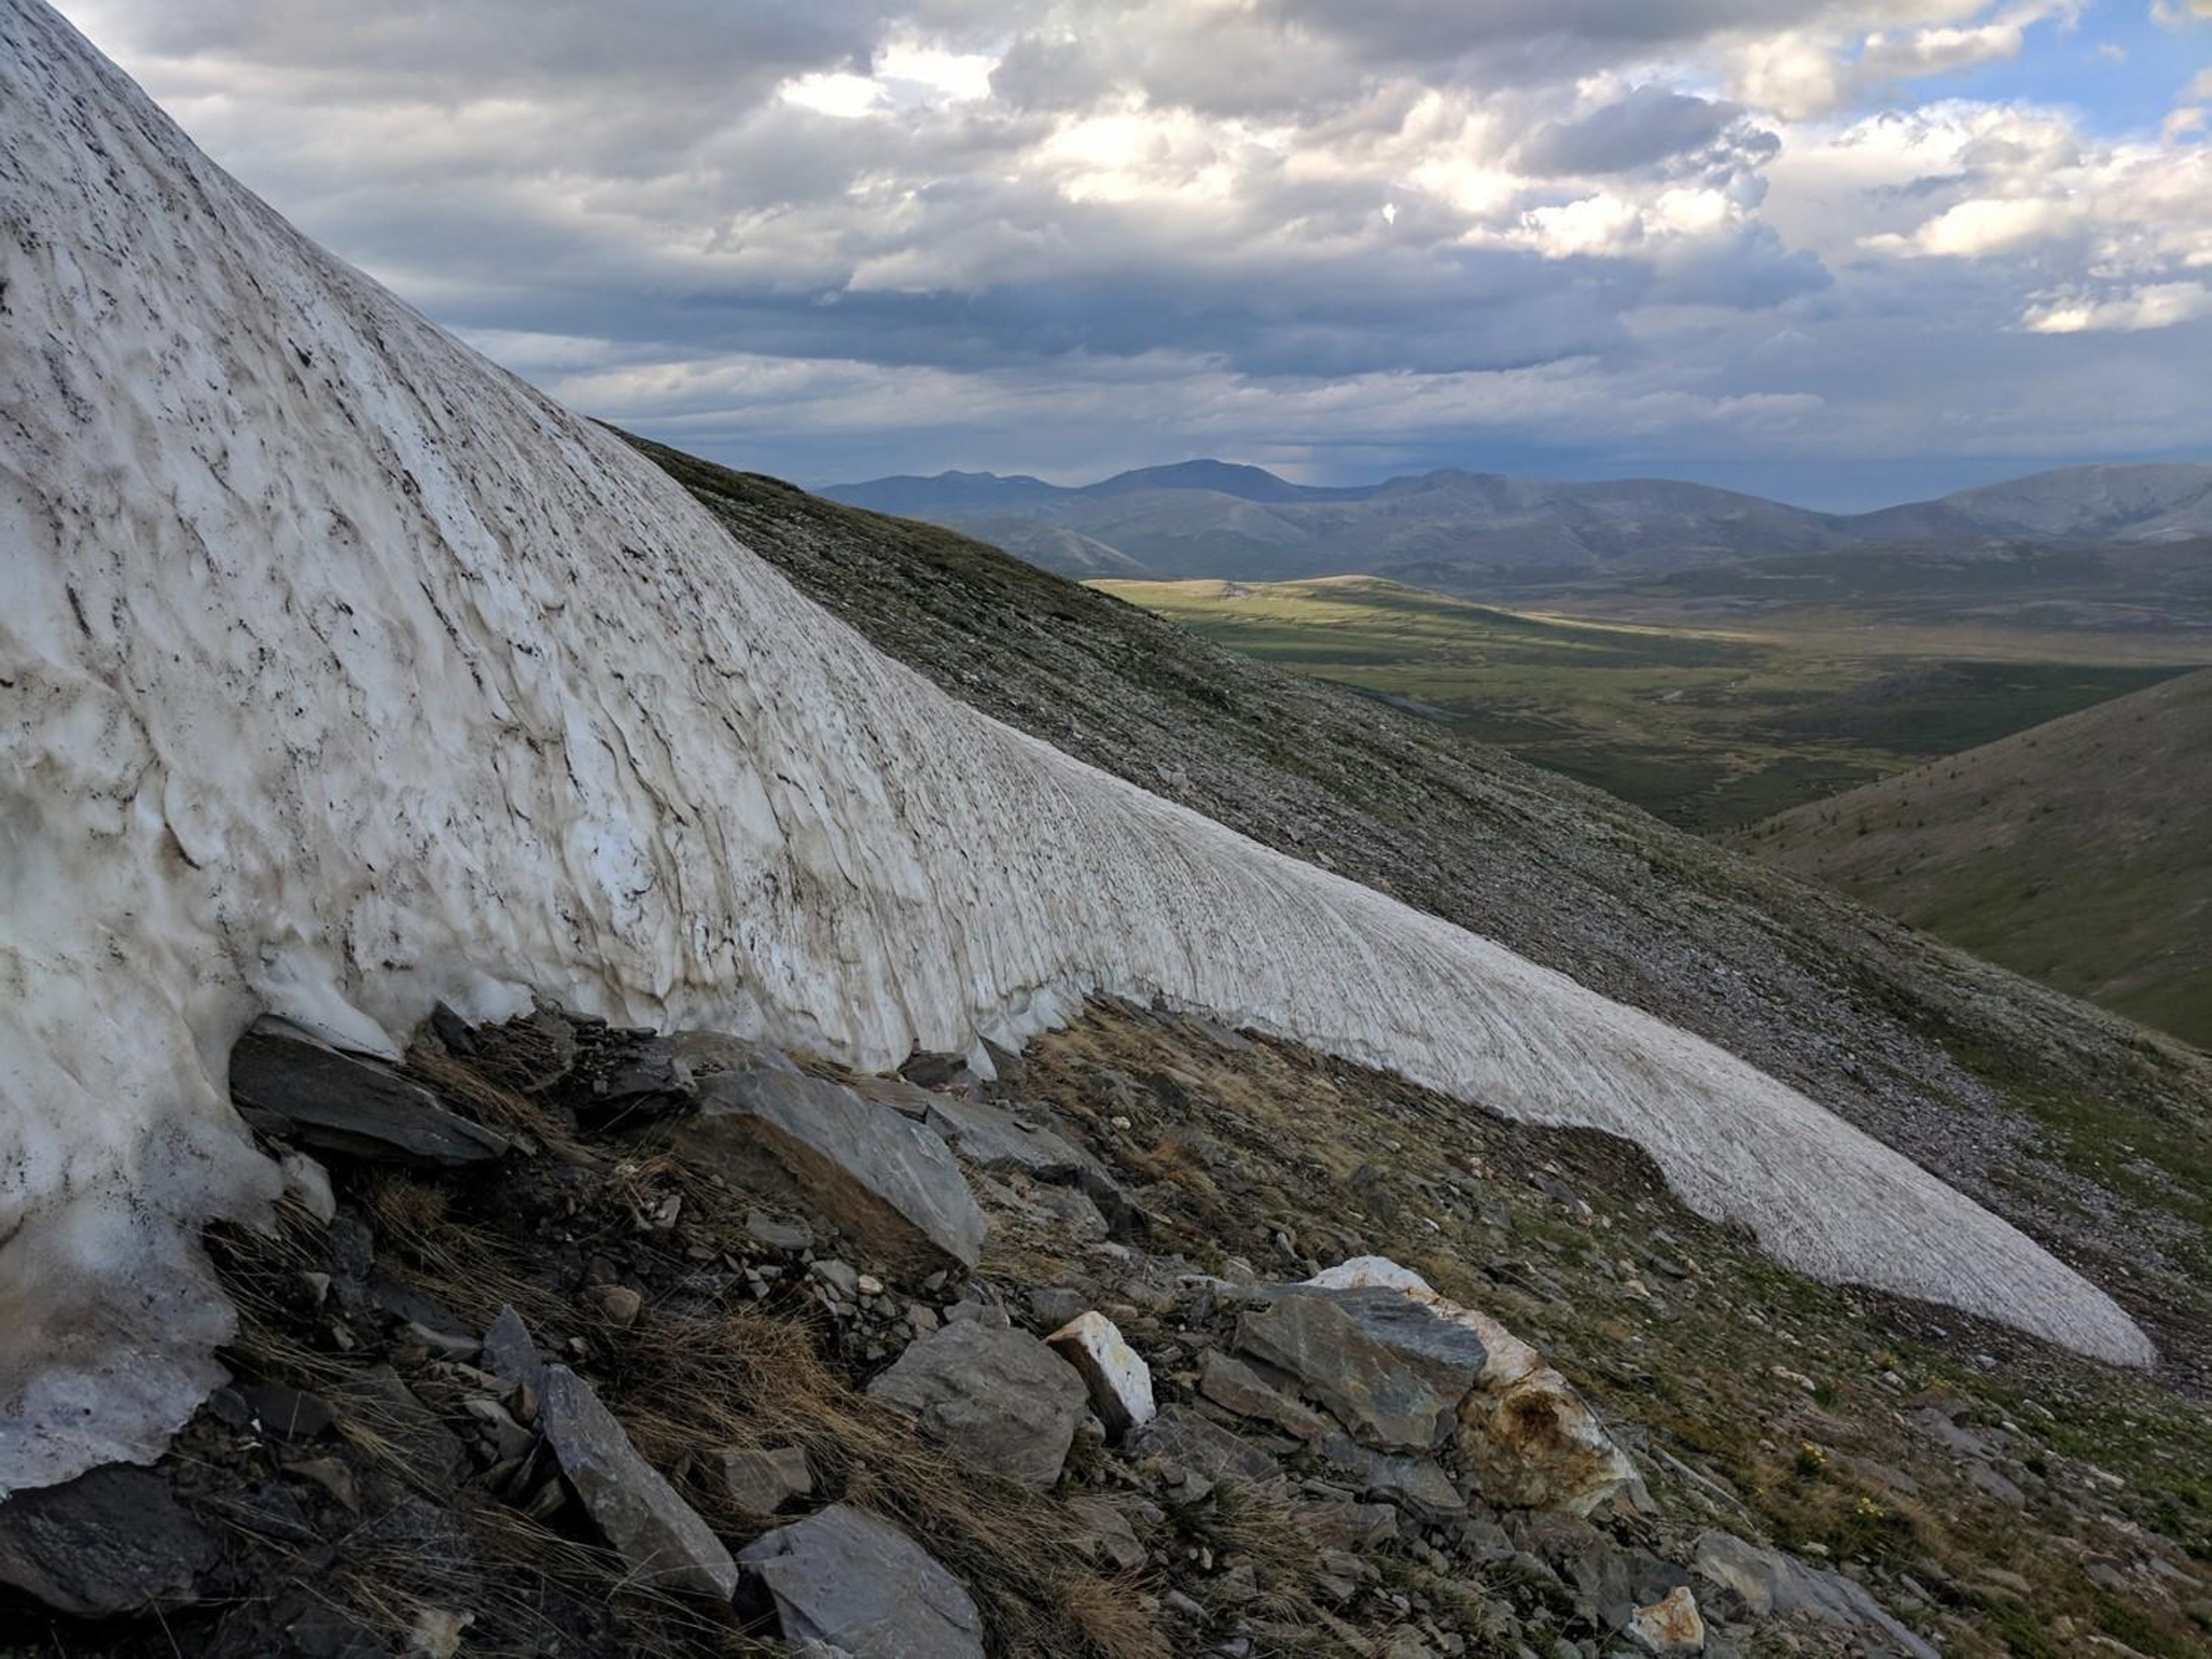 An ice patch nearing complete melt in northern Mongolia's Ulaan Taiga Special Protected Area in 2018.